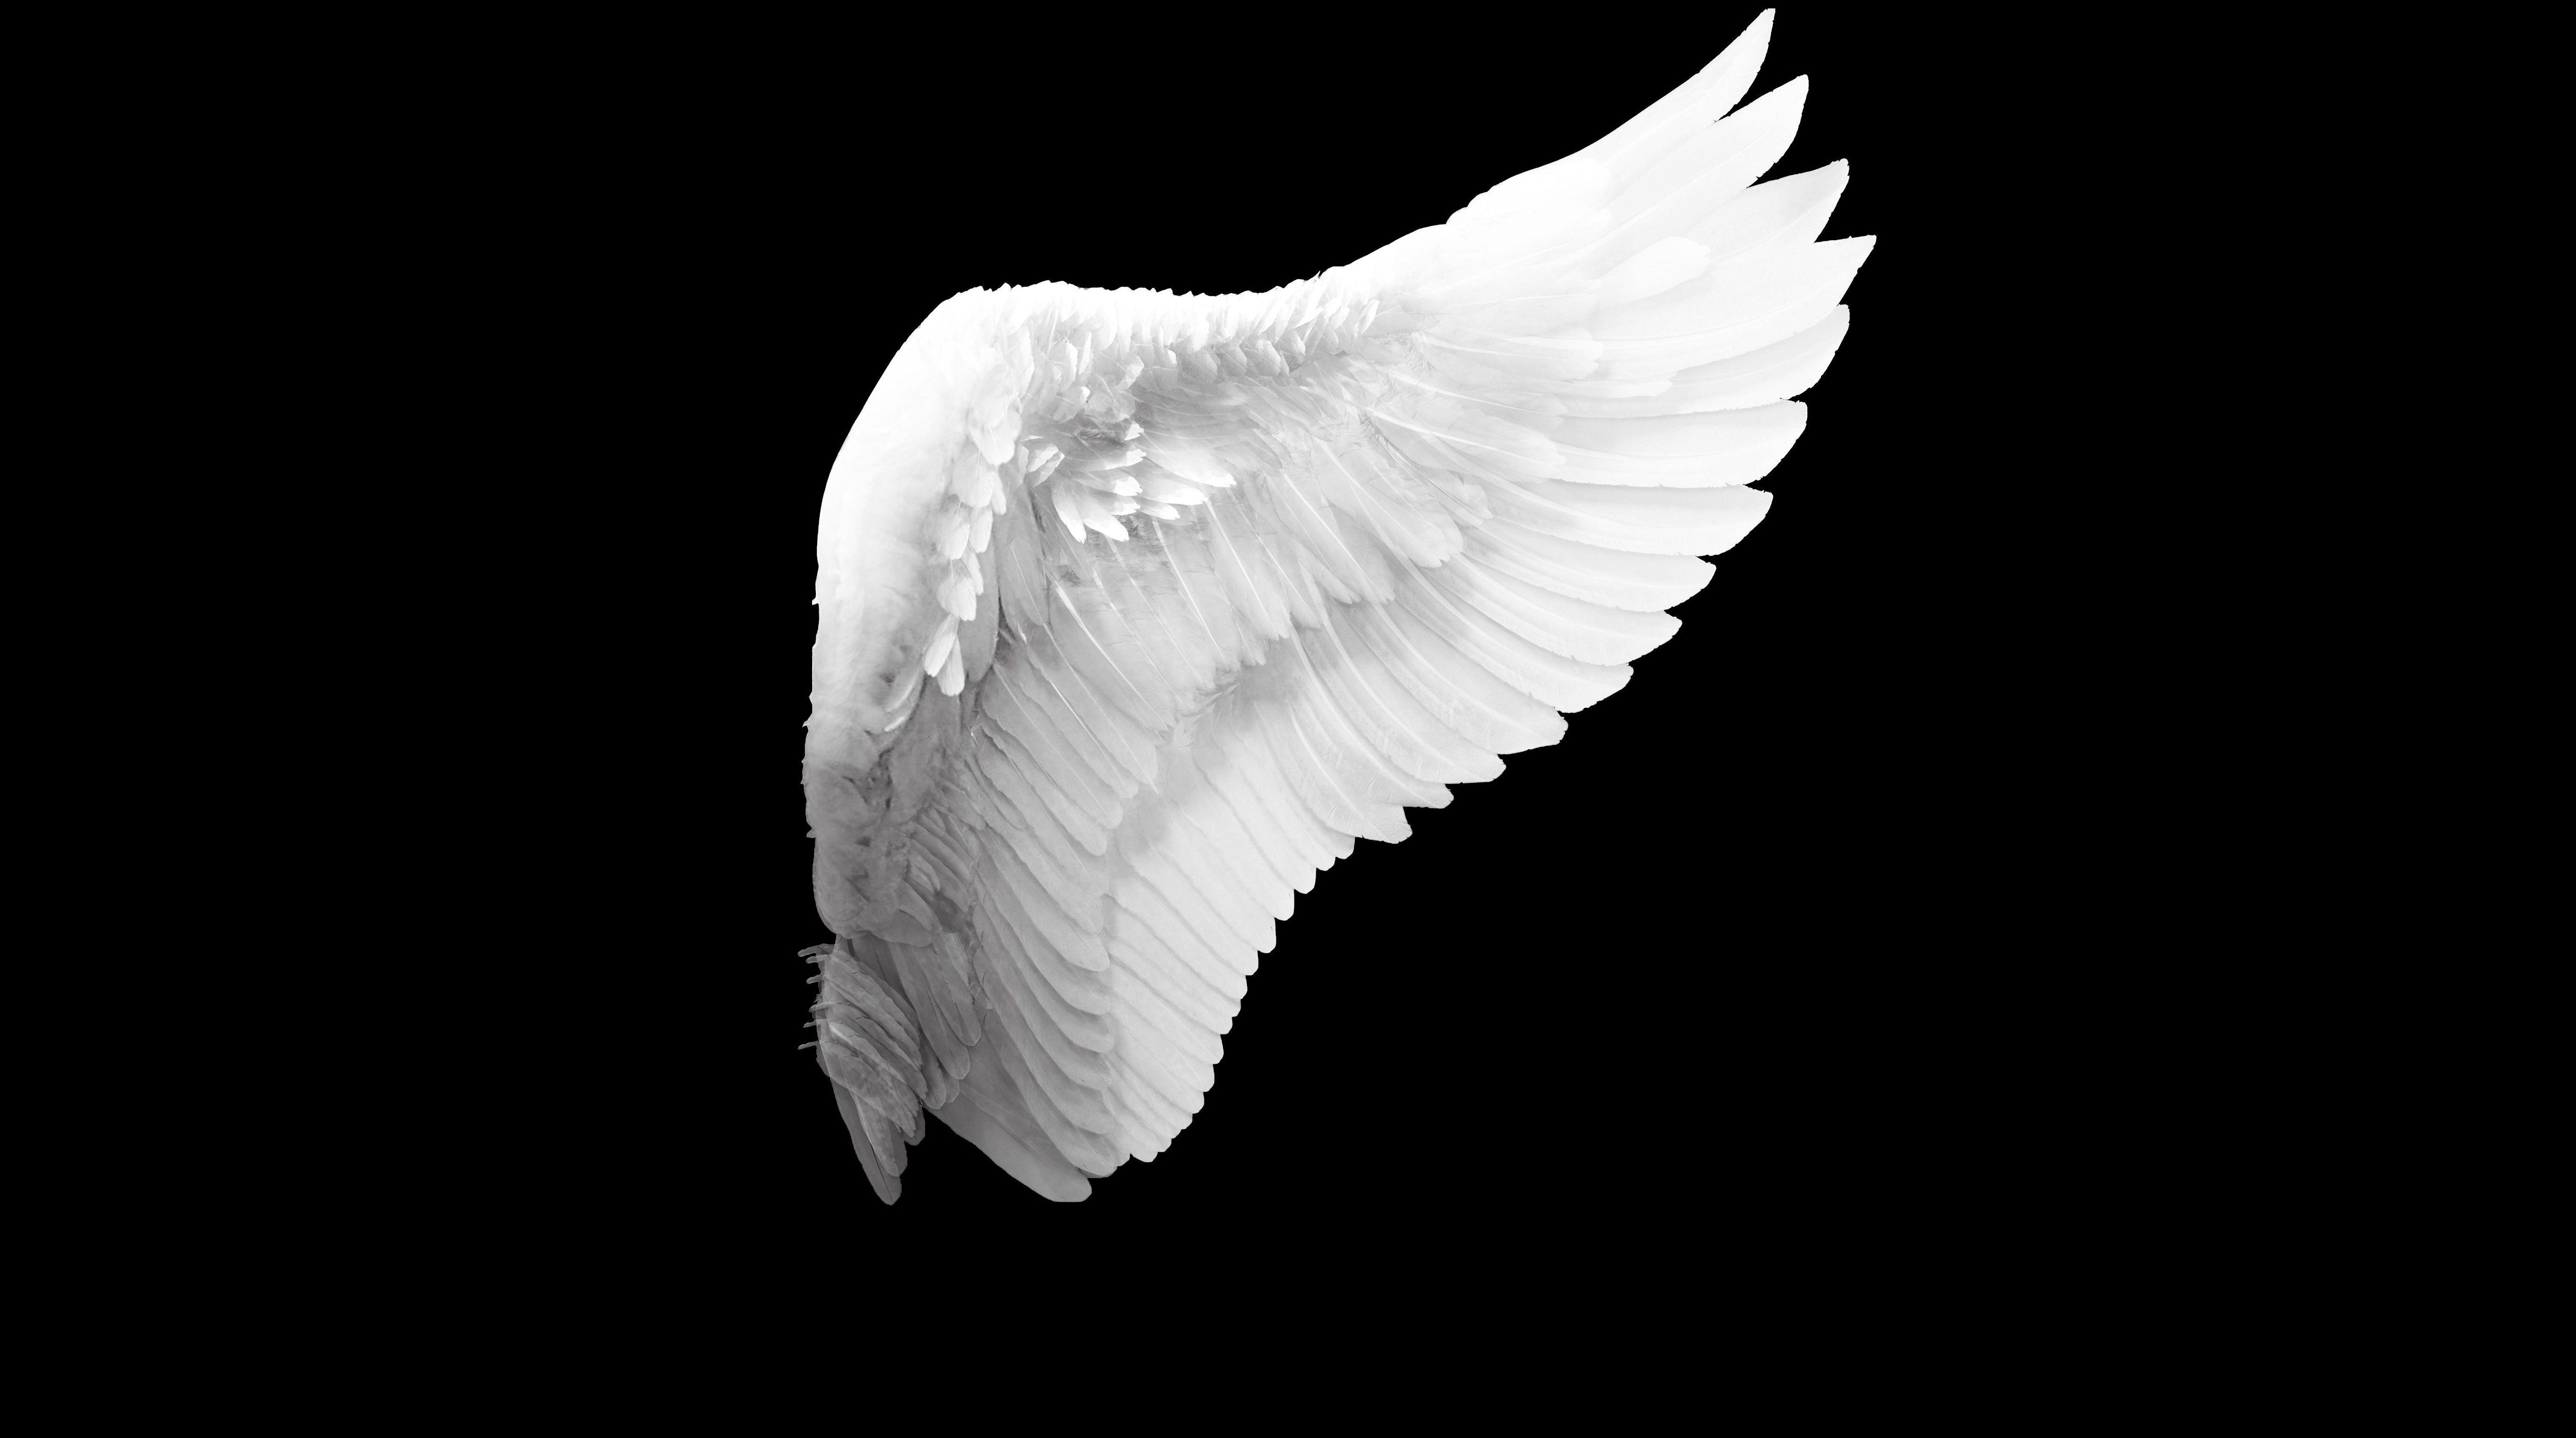 Angel Wings Wallpapers Backgrounds